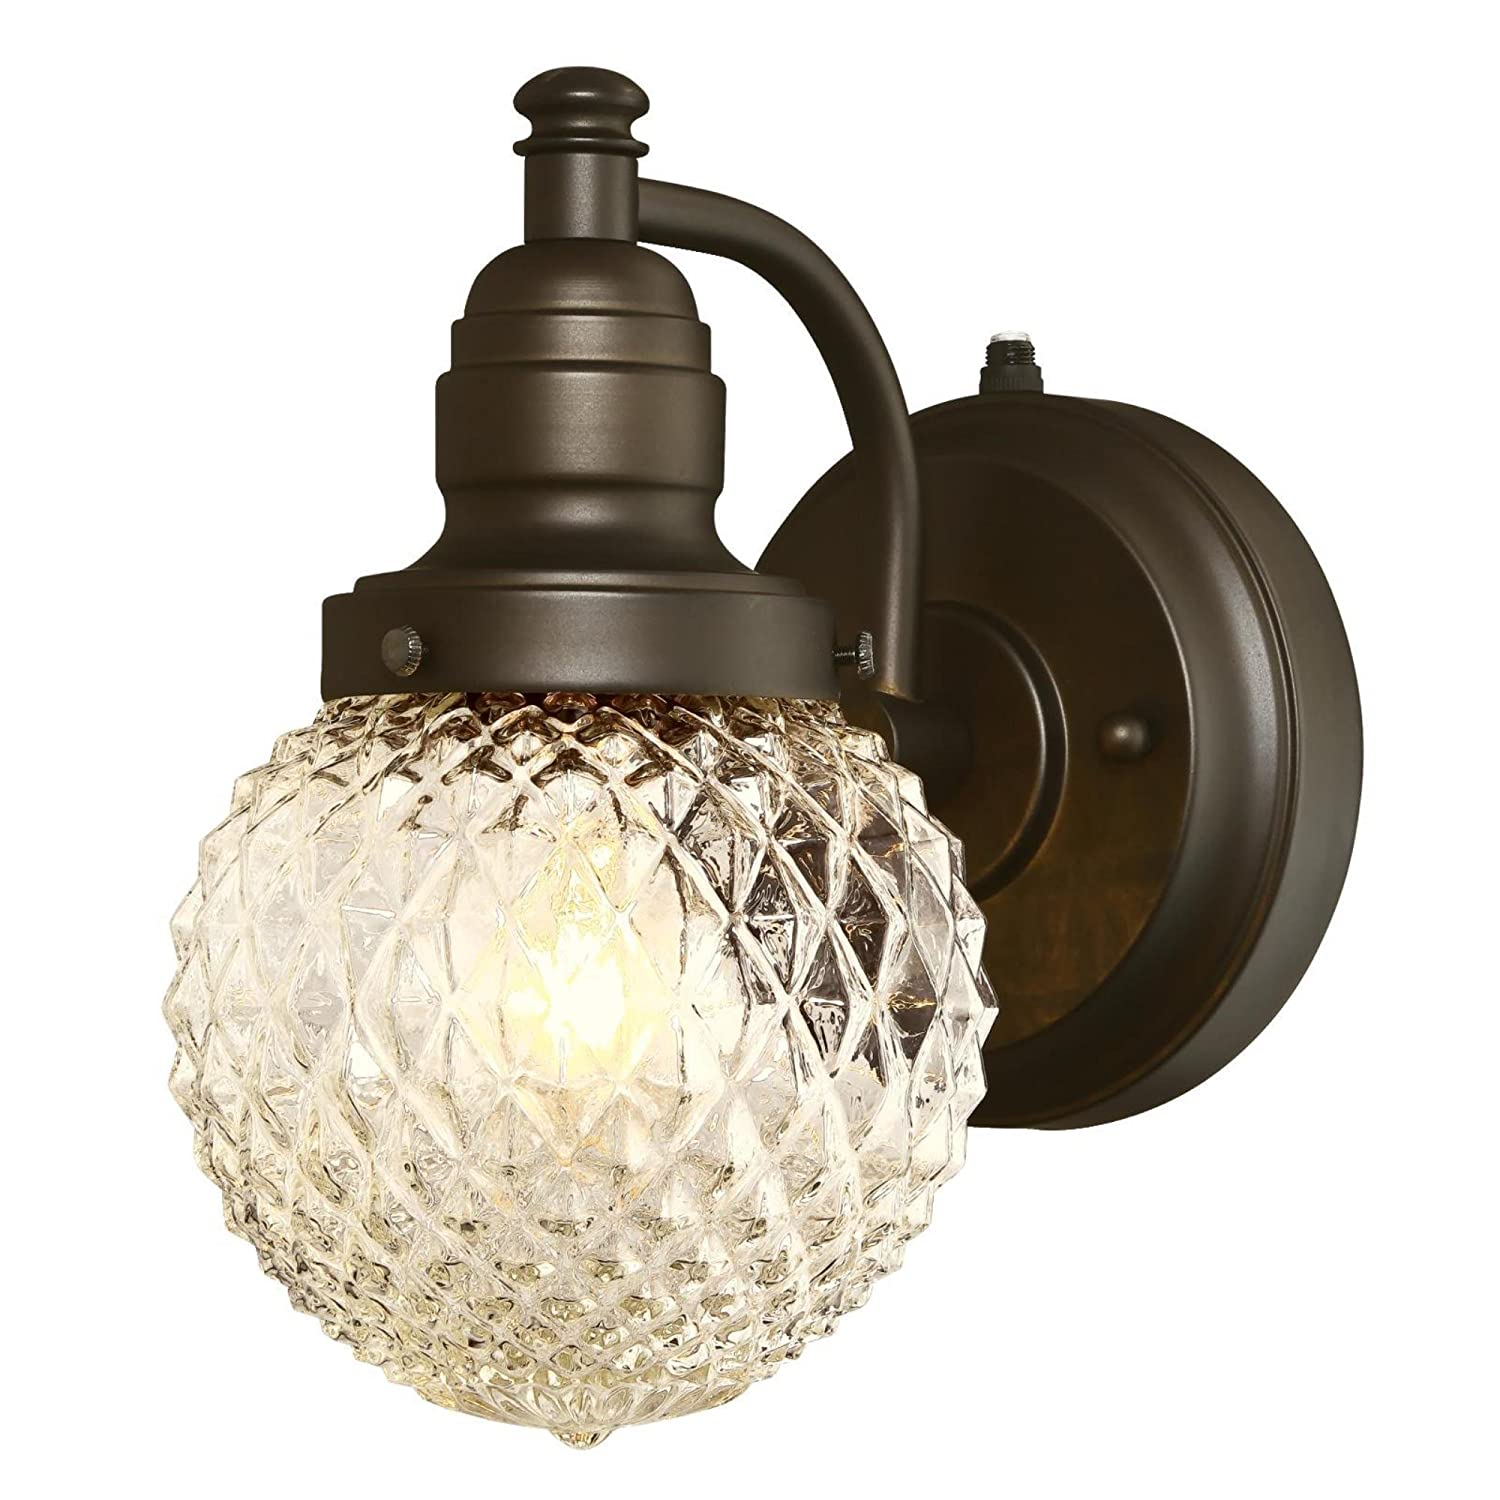 Oil Rubbed Bronze Westinghouse 6313700 Eddystone One-Light Outdoor Wall Fixture with Dusk to Dawn Sensor with with Clear Diamond Cut Glass